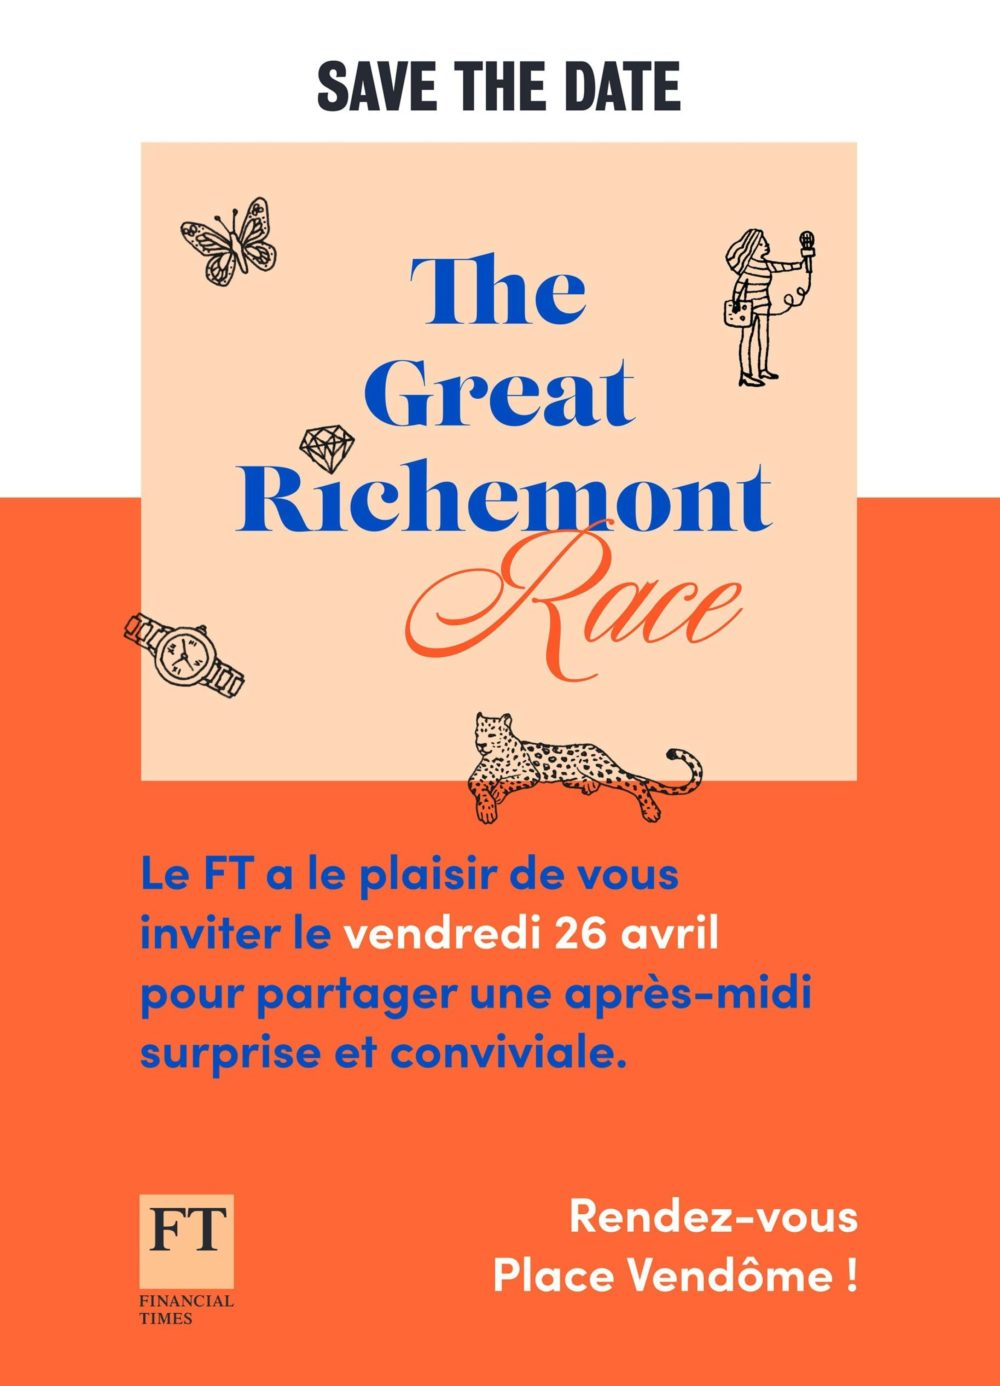 Financial Times - The Great Richmont Race - save the date